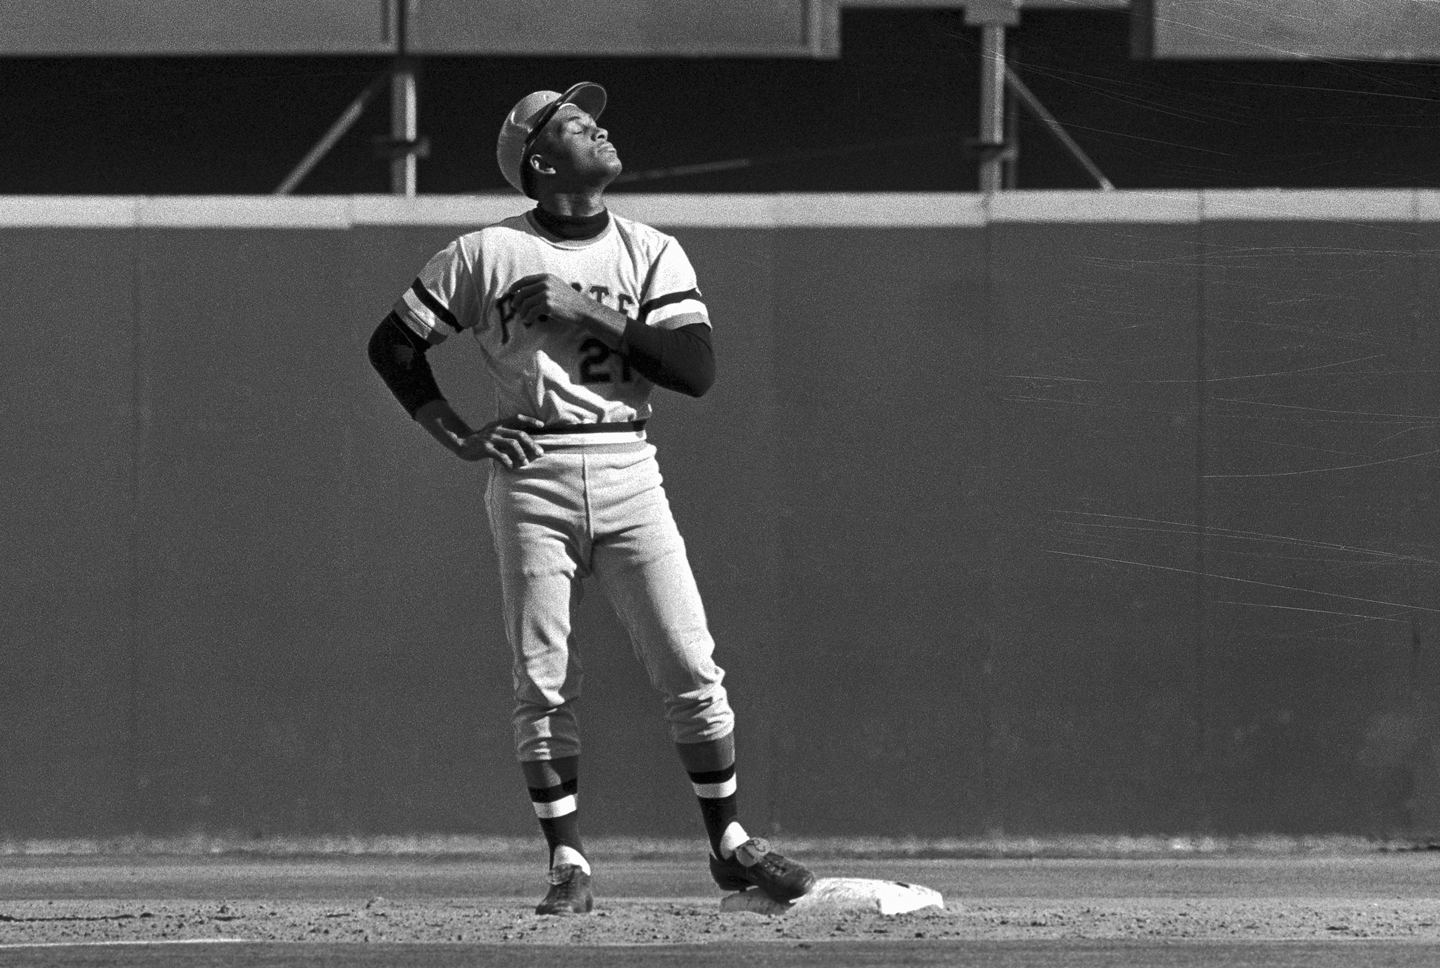 Pirates' Roberto Clemente stands on second base after hitting a double in the 4th inning against the Cincinnati Reds at Riverfront Stadium on October 9, 1972 during game 3 of the National League Playoffs.